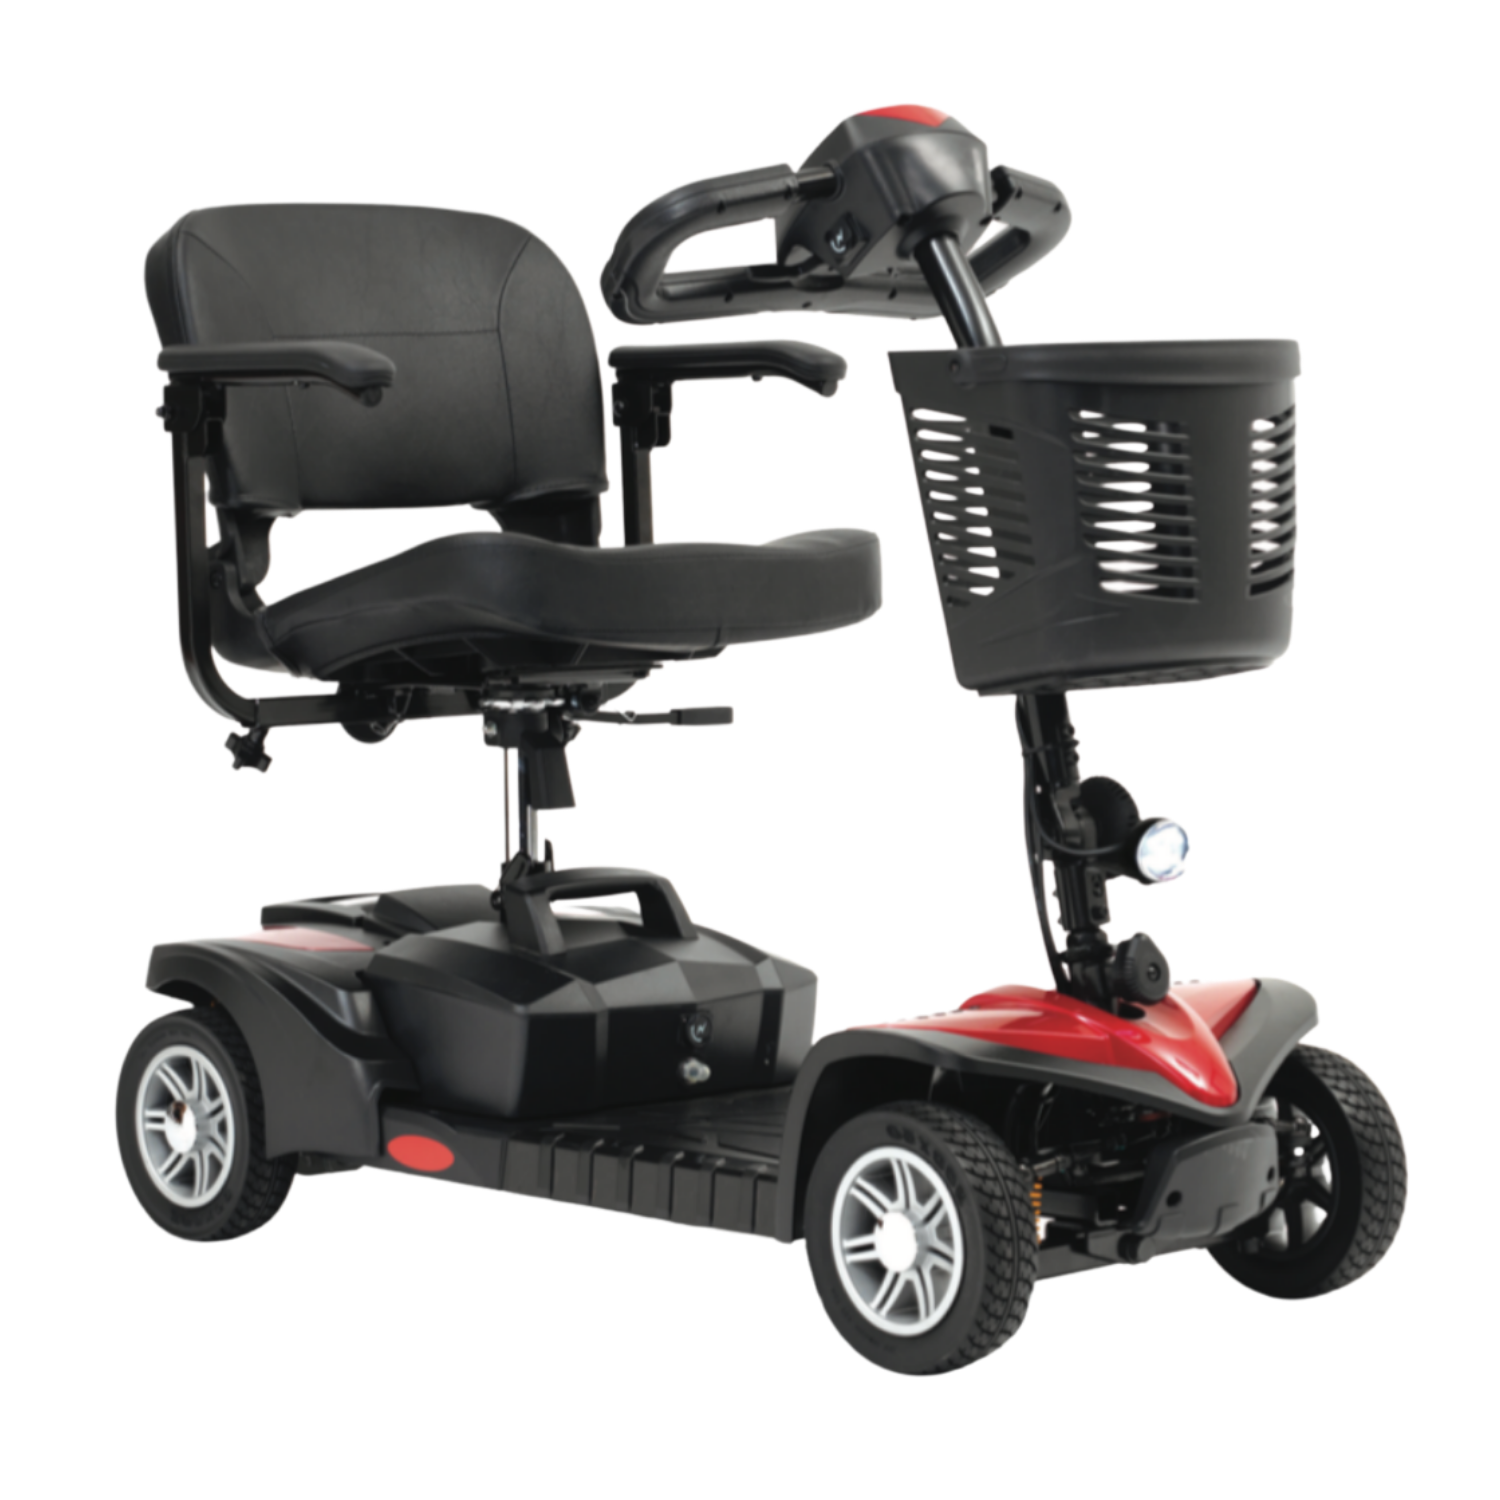 Drive Venom Sports Mobility Scooter with Suspension